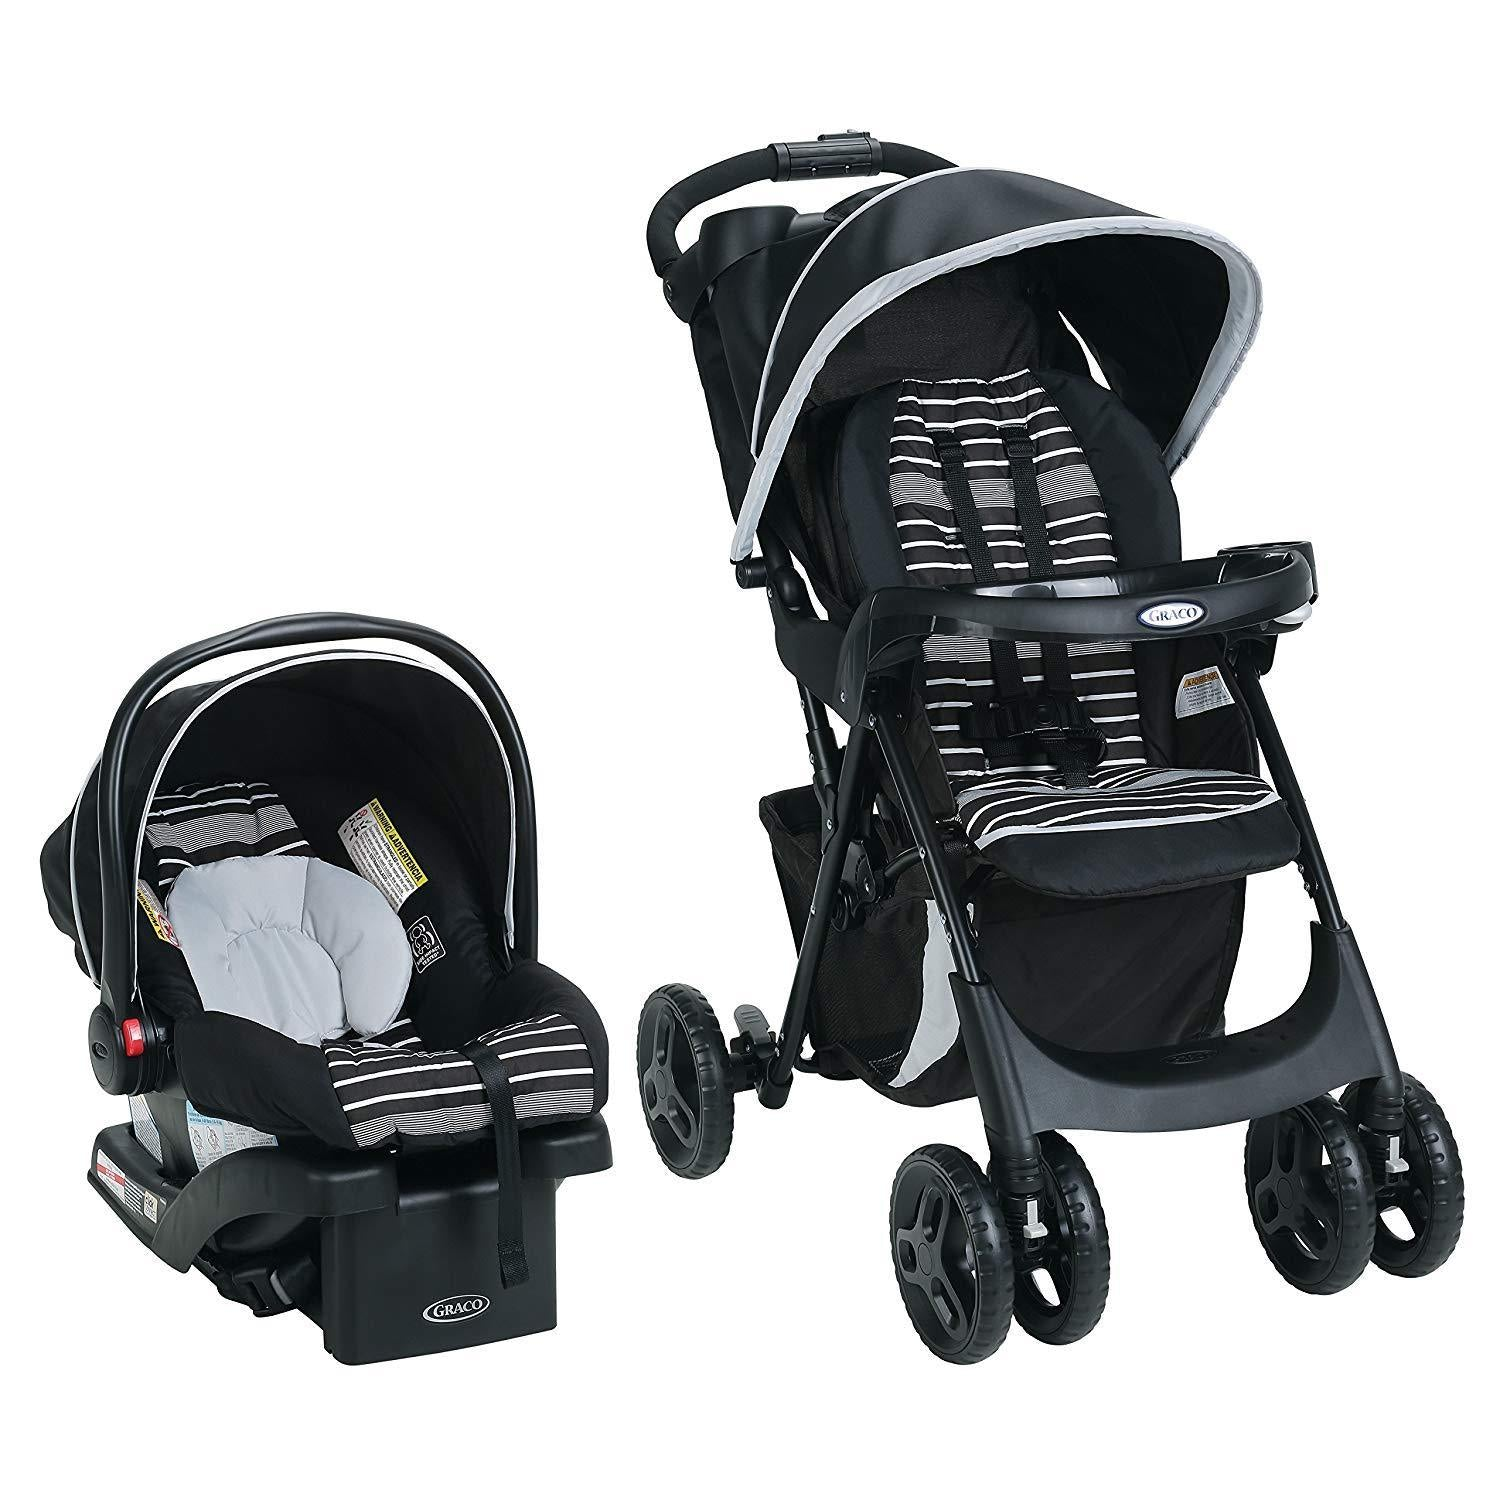 Graco Comfy Cruiser Click Connect Travel System - Conrad